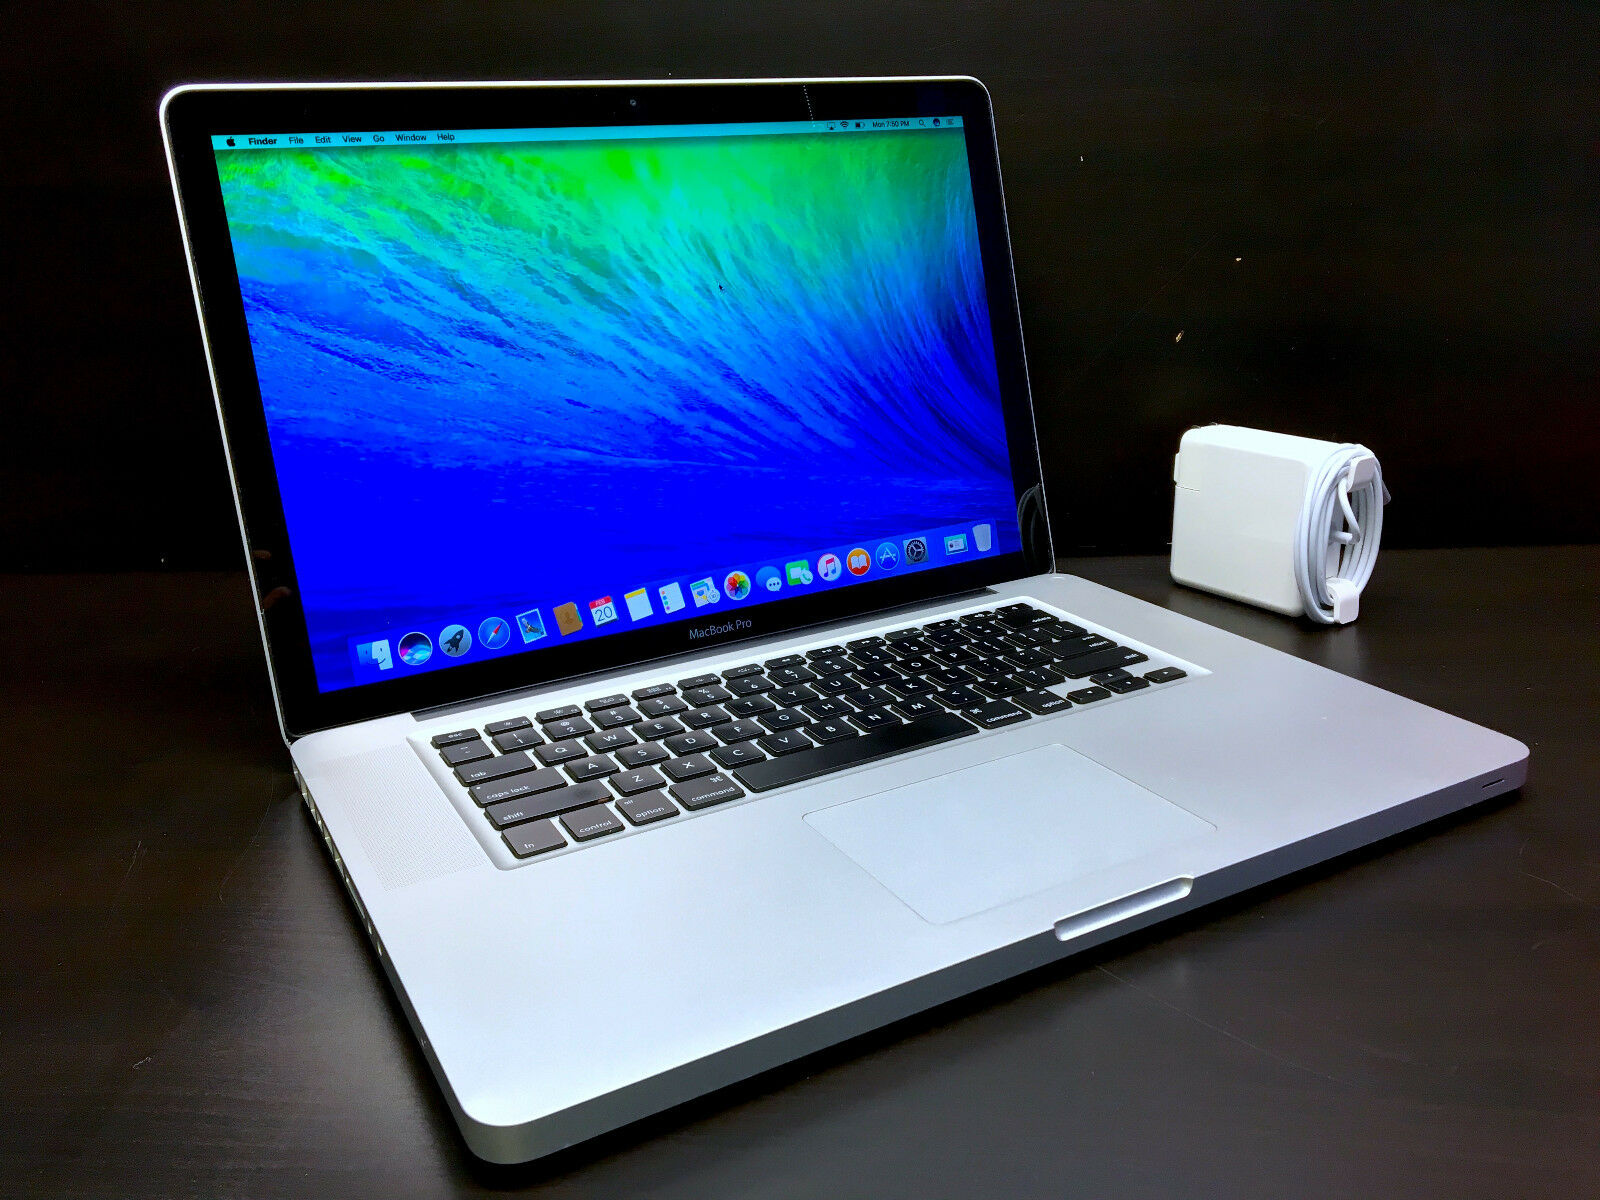 Macbook Pro - Apple MacBook Pro 15 inch OSX-2015 *THREE YEAR WARRANTY* Fully Loaded 500GB HD!